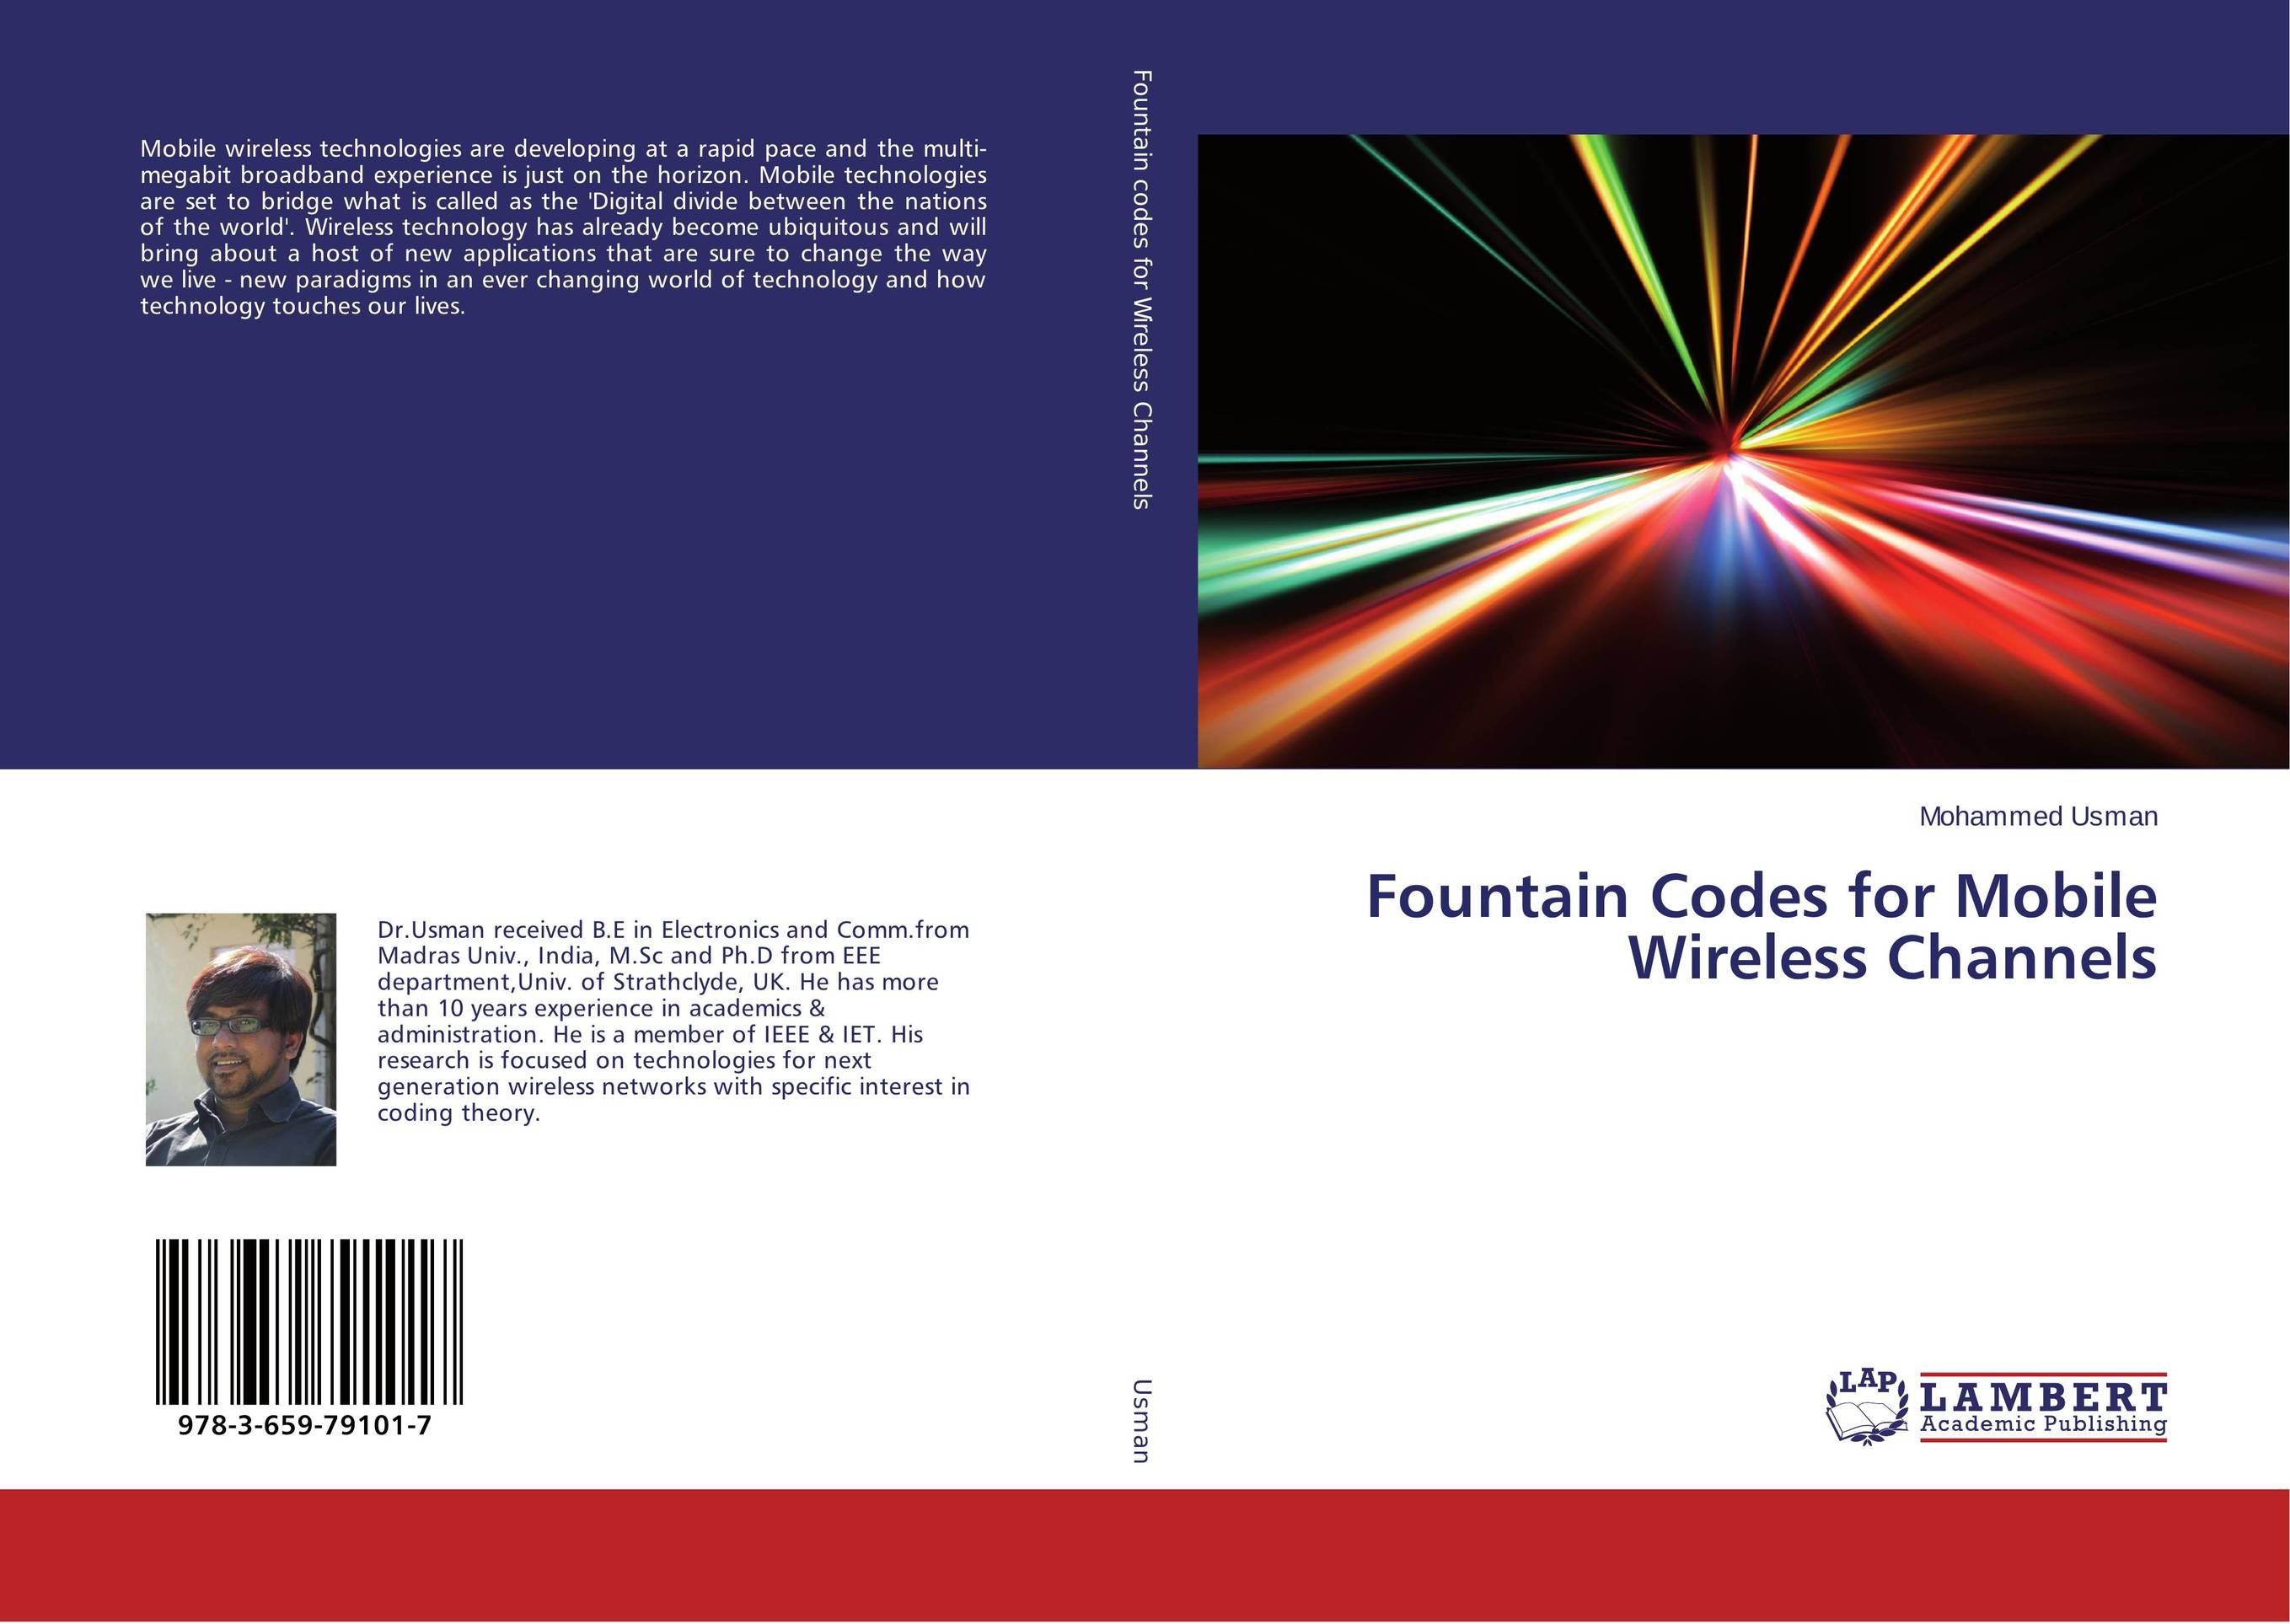 Fountain Codes for Mobile Wireless Channels